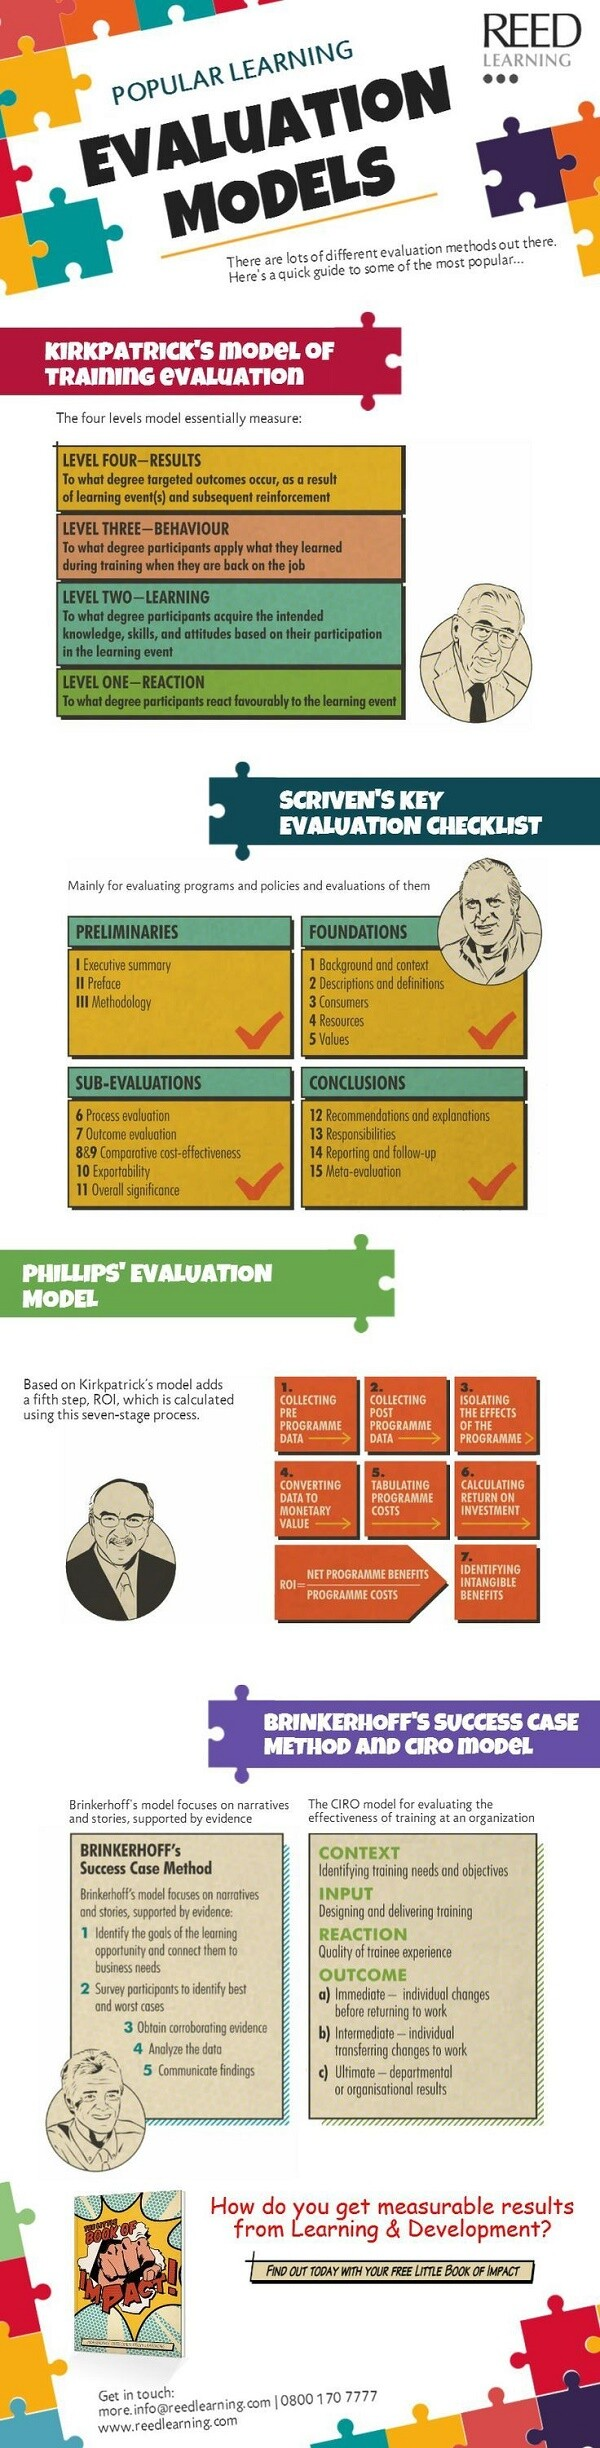 Popular-Learning-Evaluation-Models-Infographic.jpg